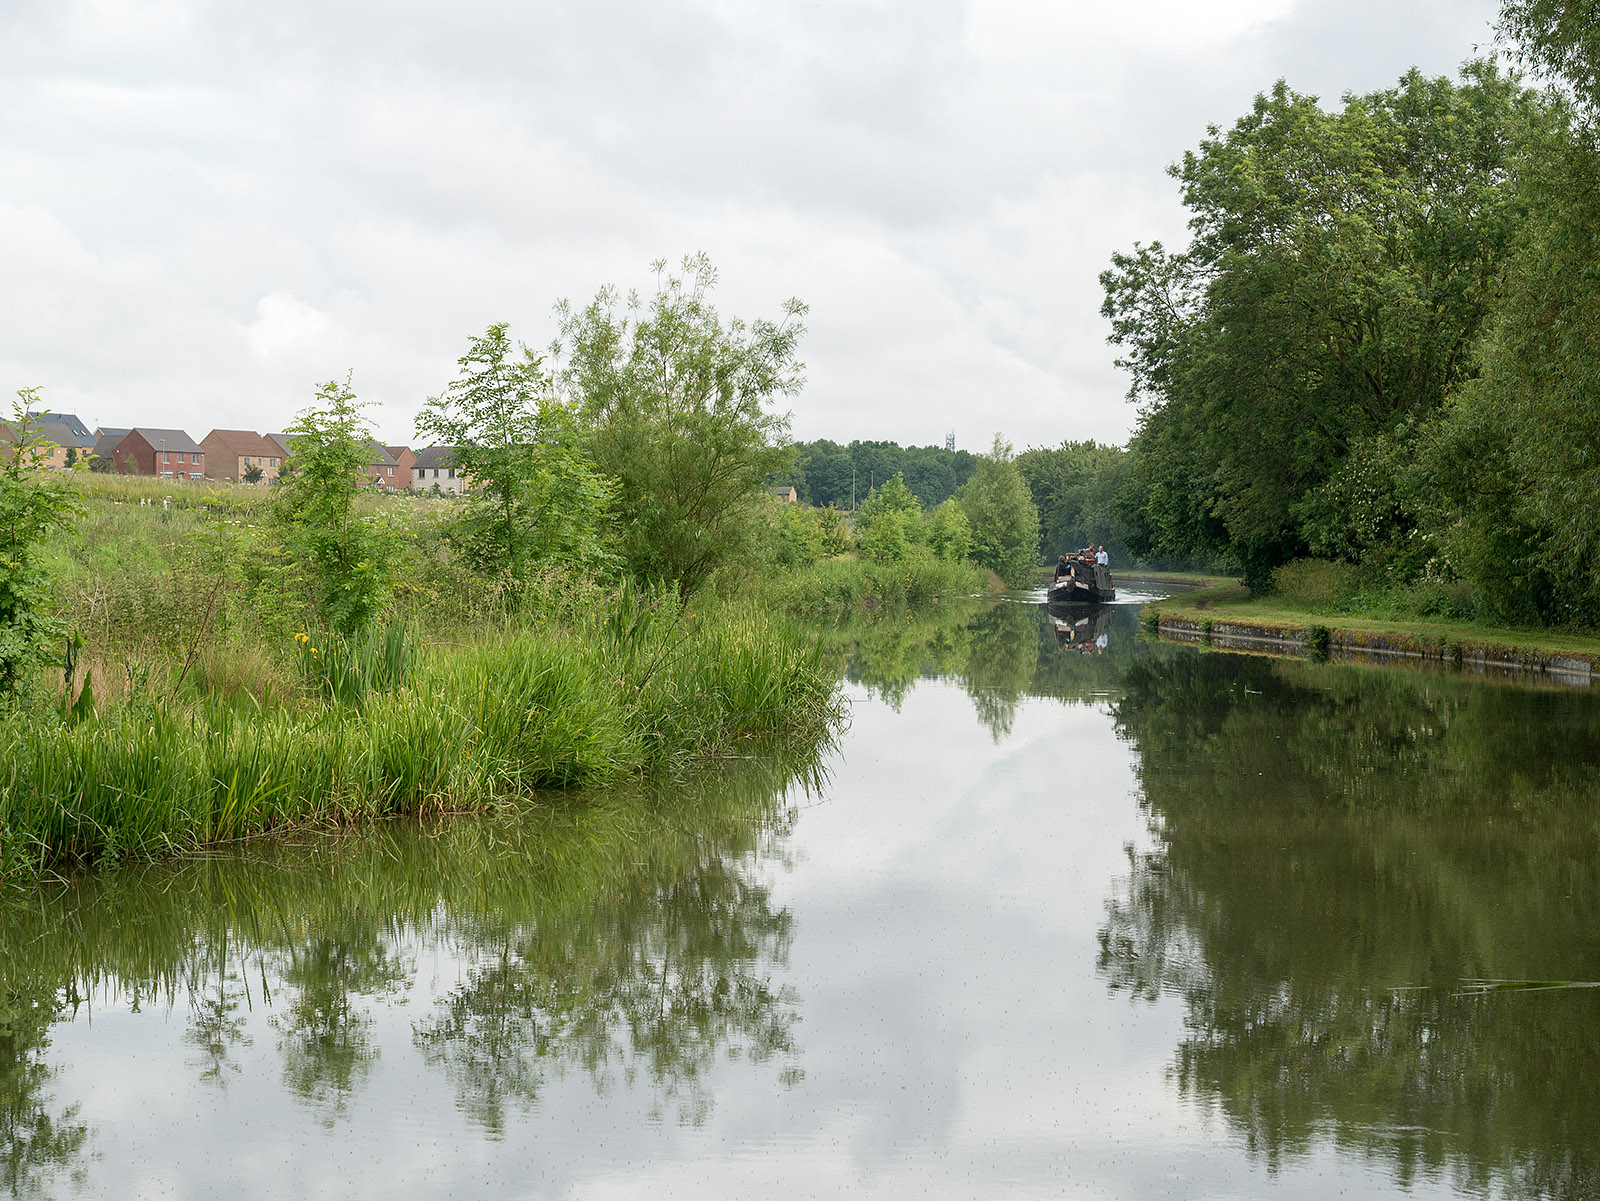 Despite this being mid June, not much traffic on the canal - perhaps due to the weather